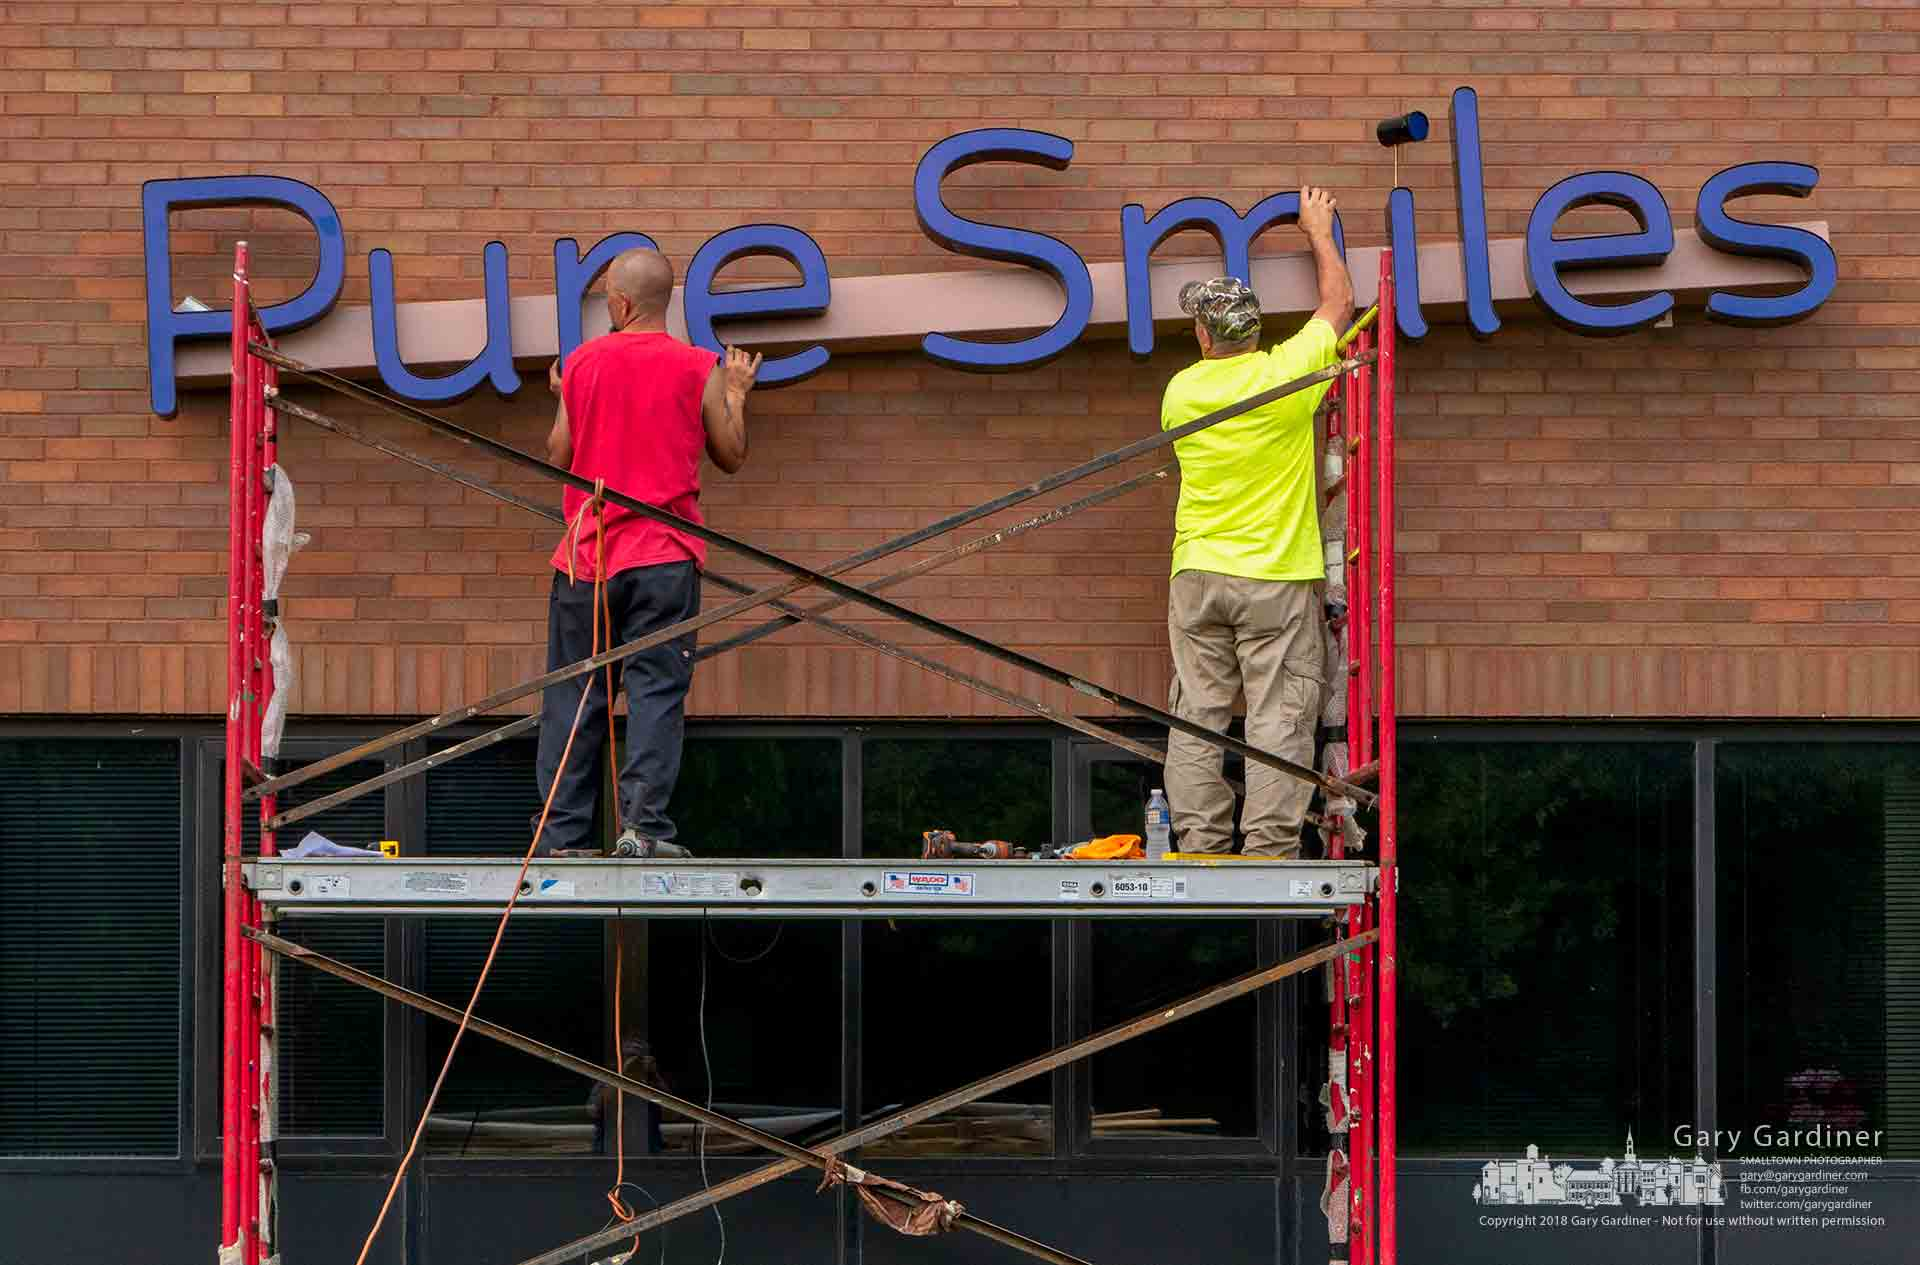 Sign workers adjust the position of the sign for a dental office being attached to the side of the building at Dempsey and Sunbury Roads. My Final Photo for July 30, 2018.